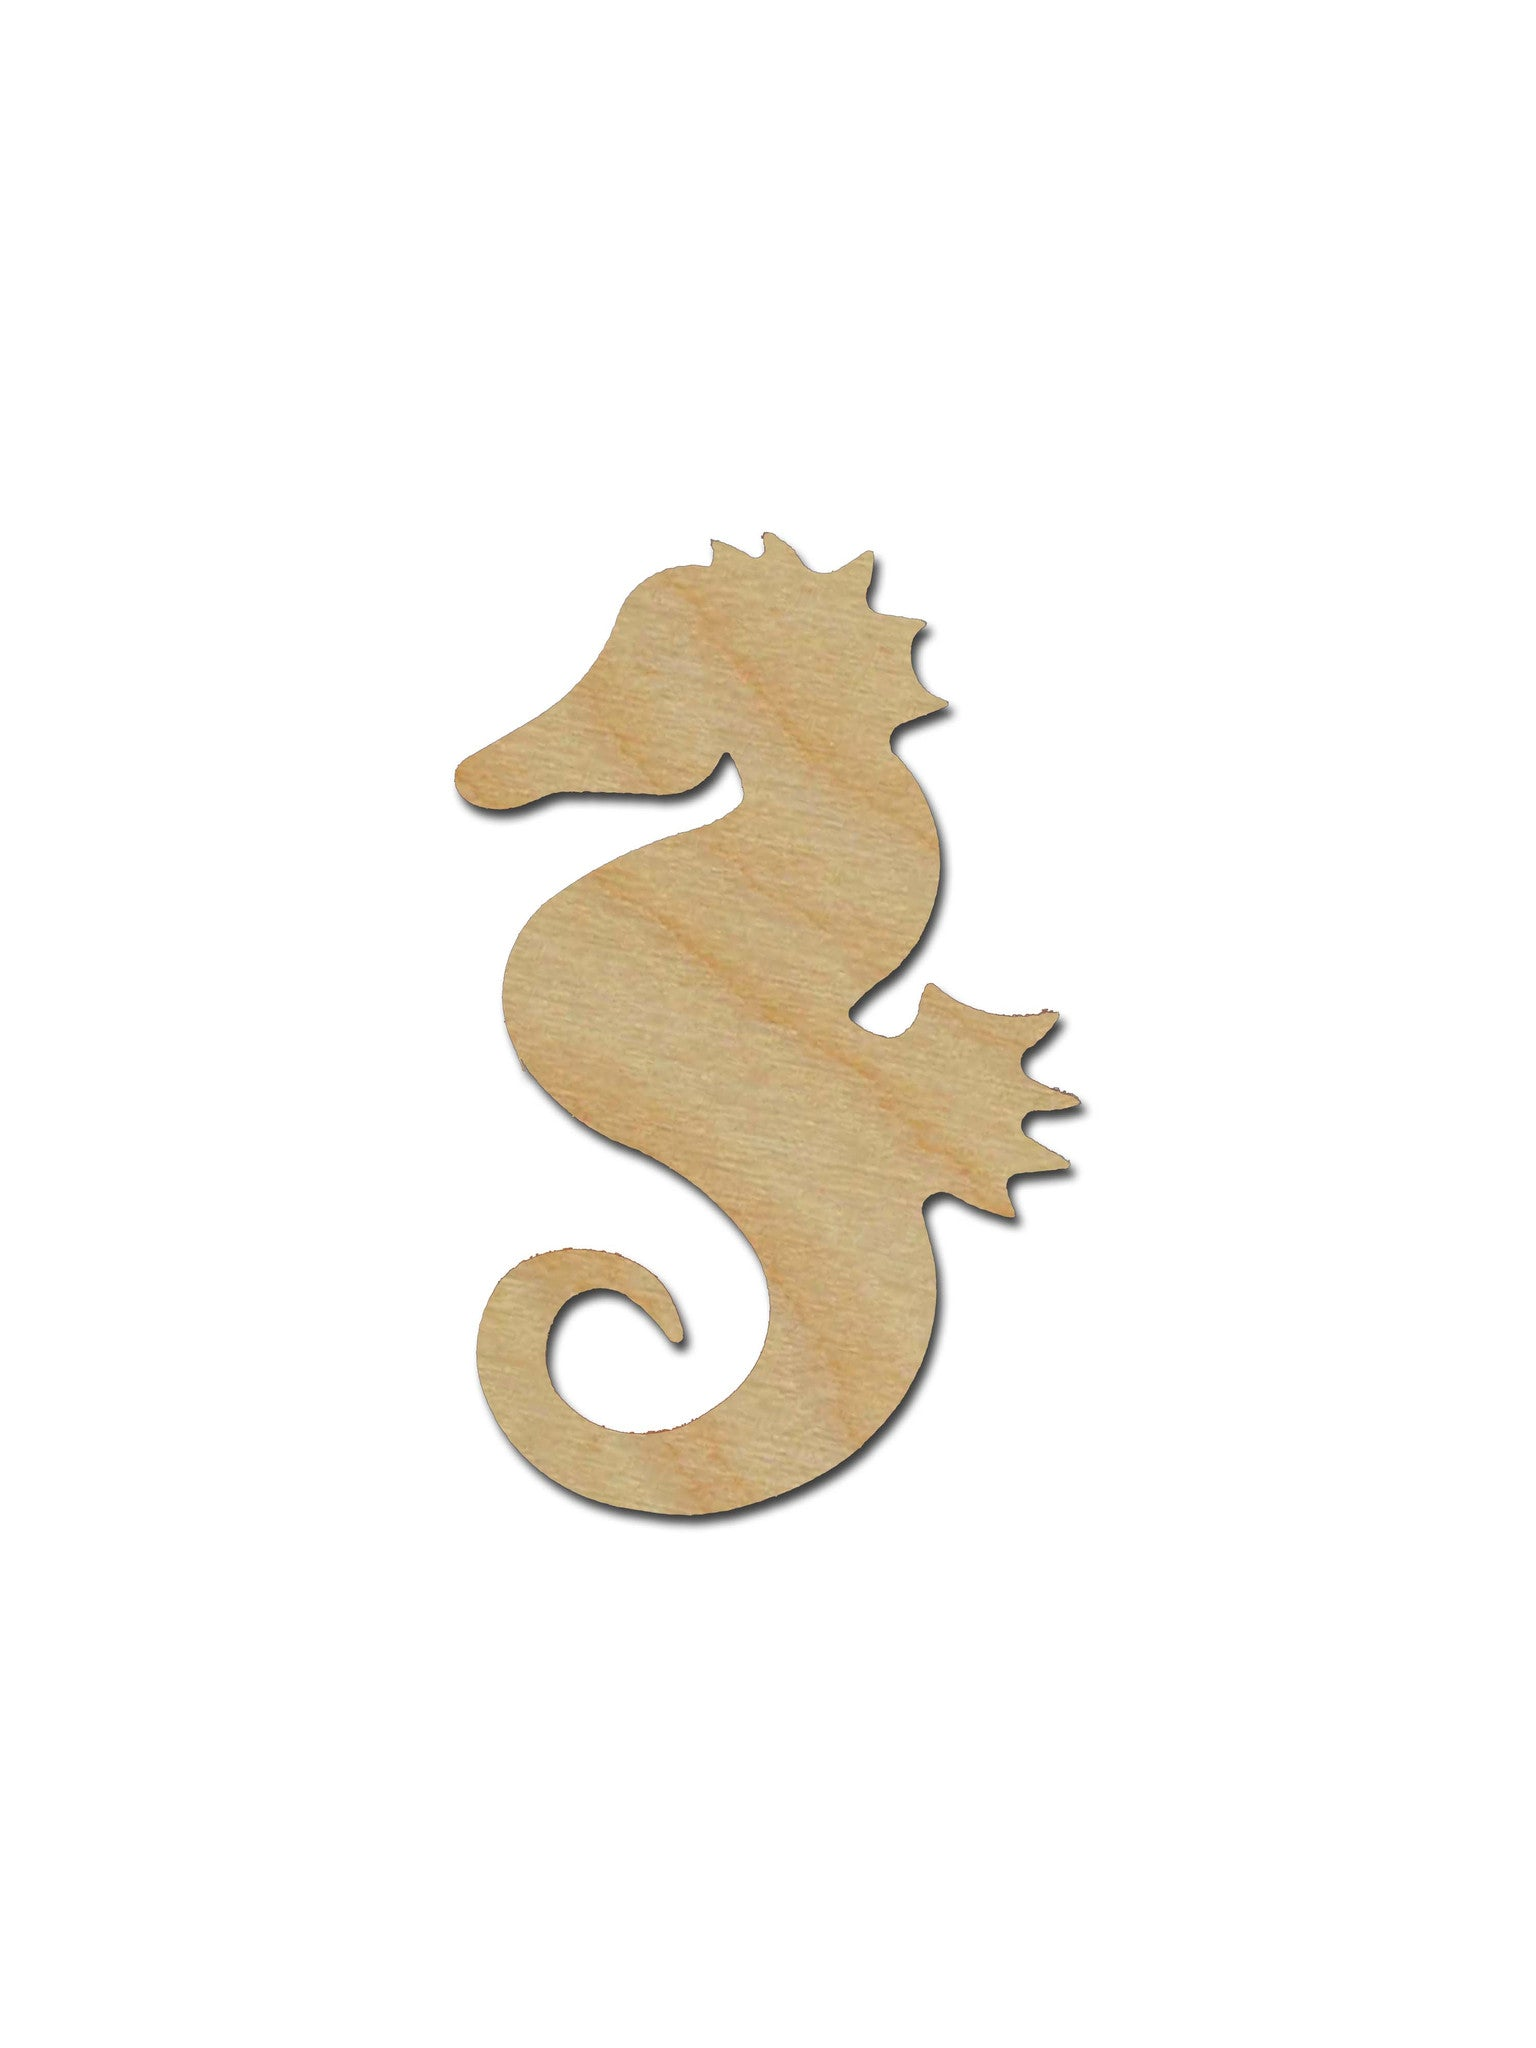 Seahorse Unfinished Wood Coutout